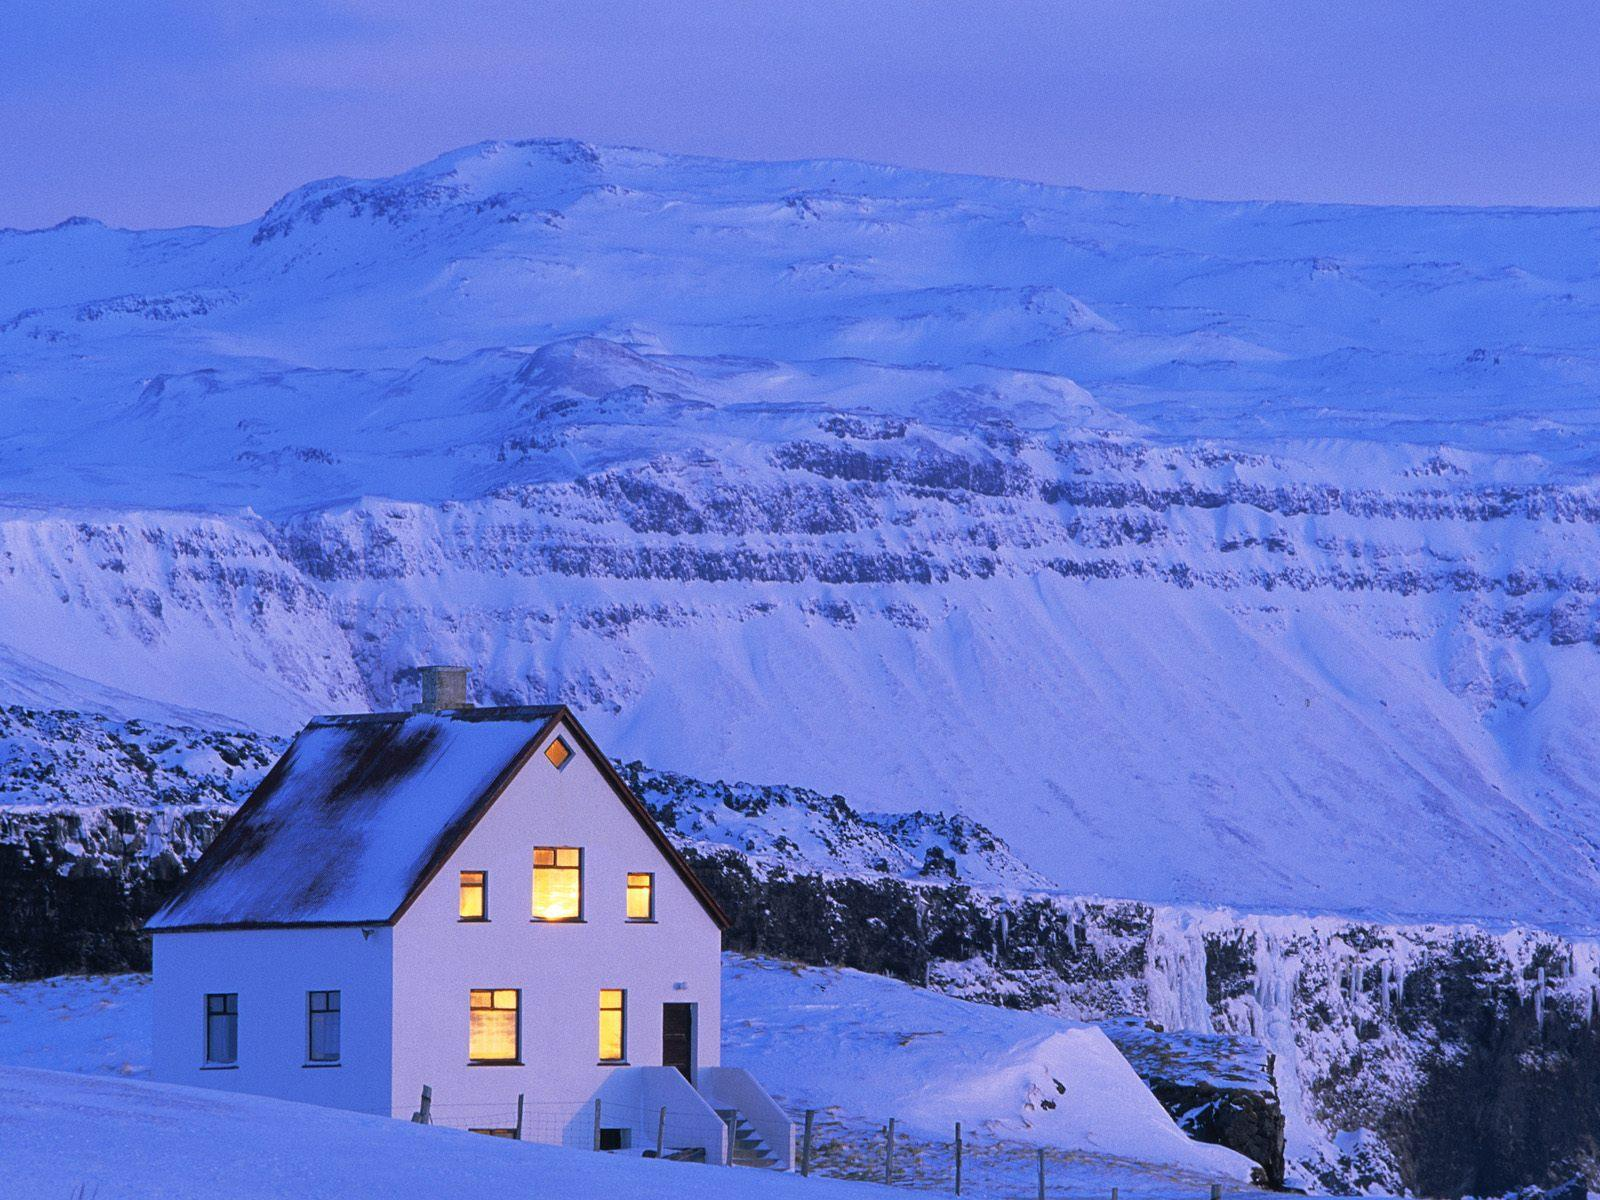 winter Mountains lonely House HD Wallpaper